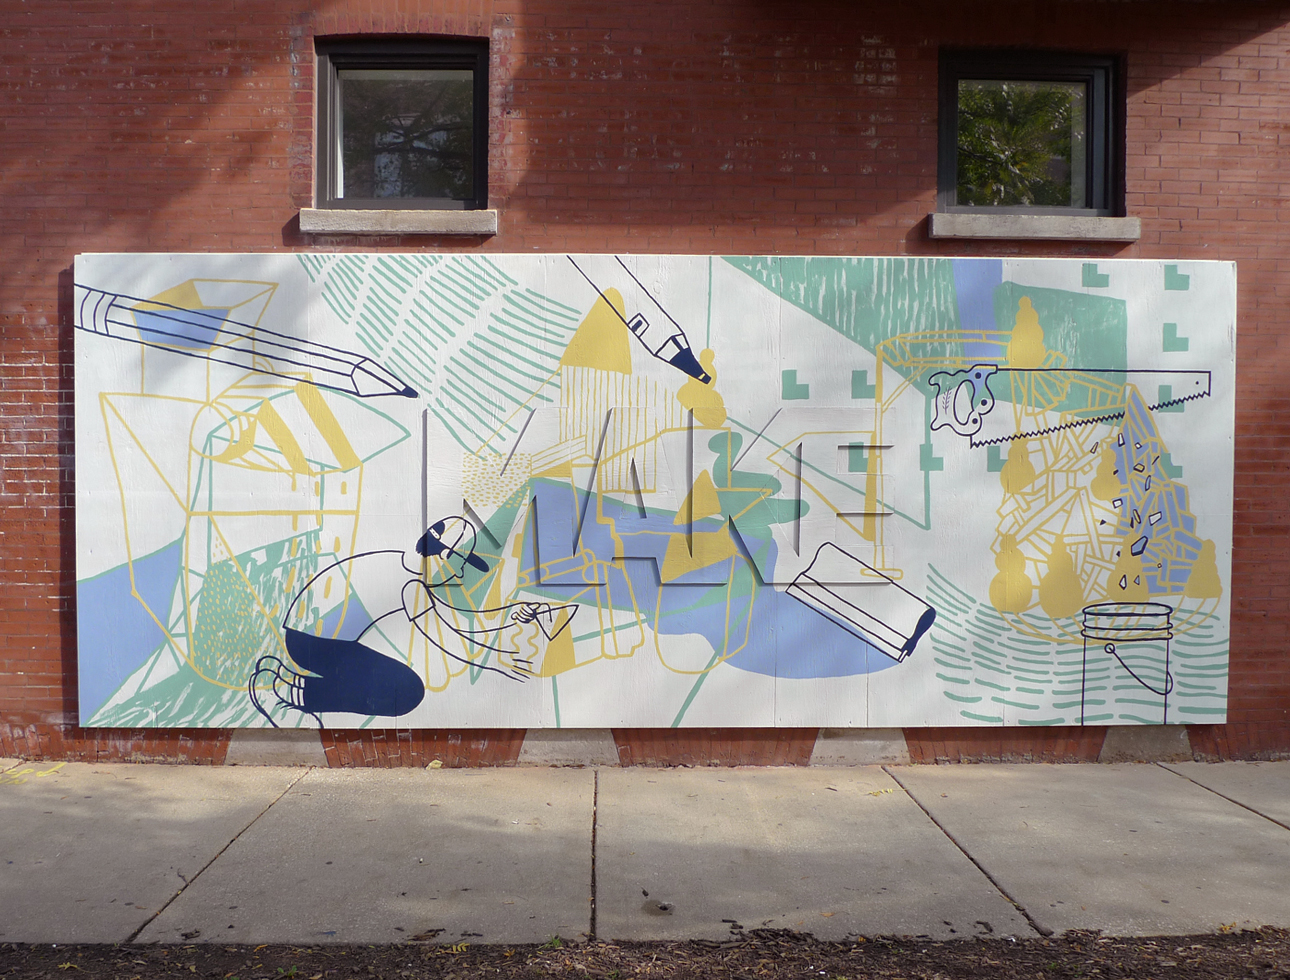 Make Mural – Chicago Public Art